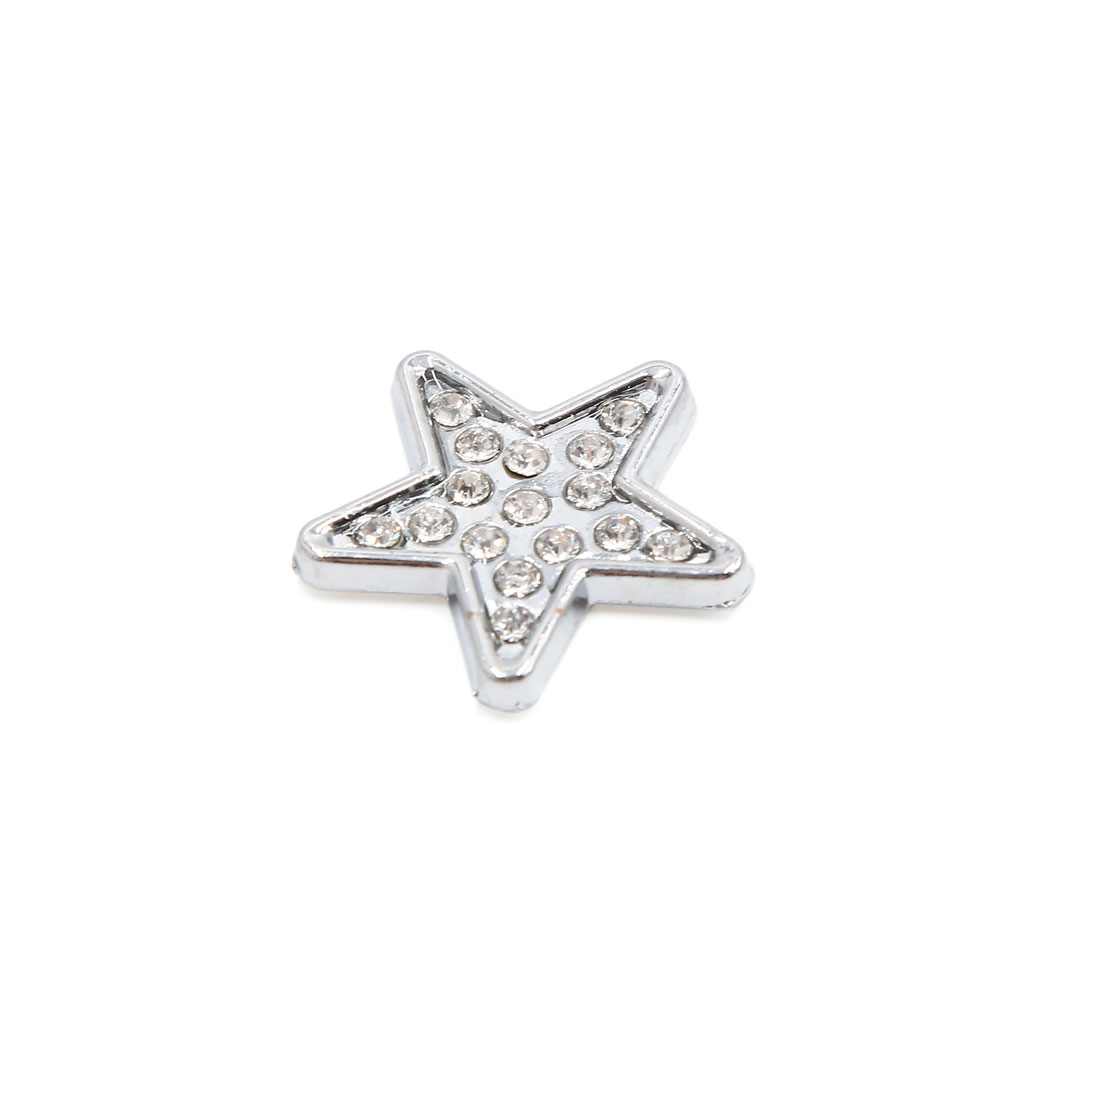 3D Silver Tone Metal Star Shaped Rhinestone Car Body Emblem Badge Sticker Decal